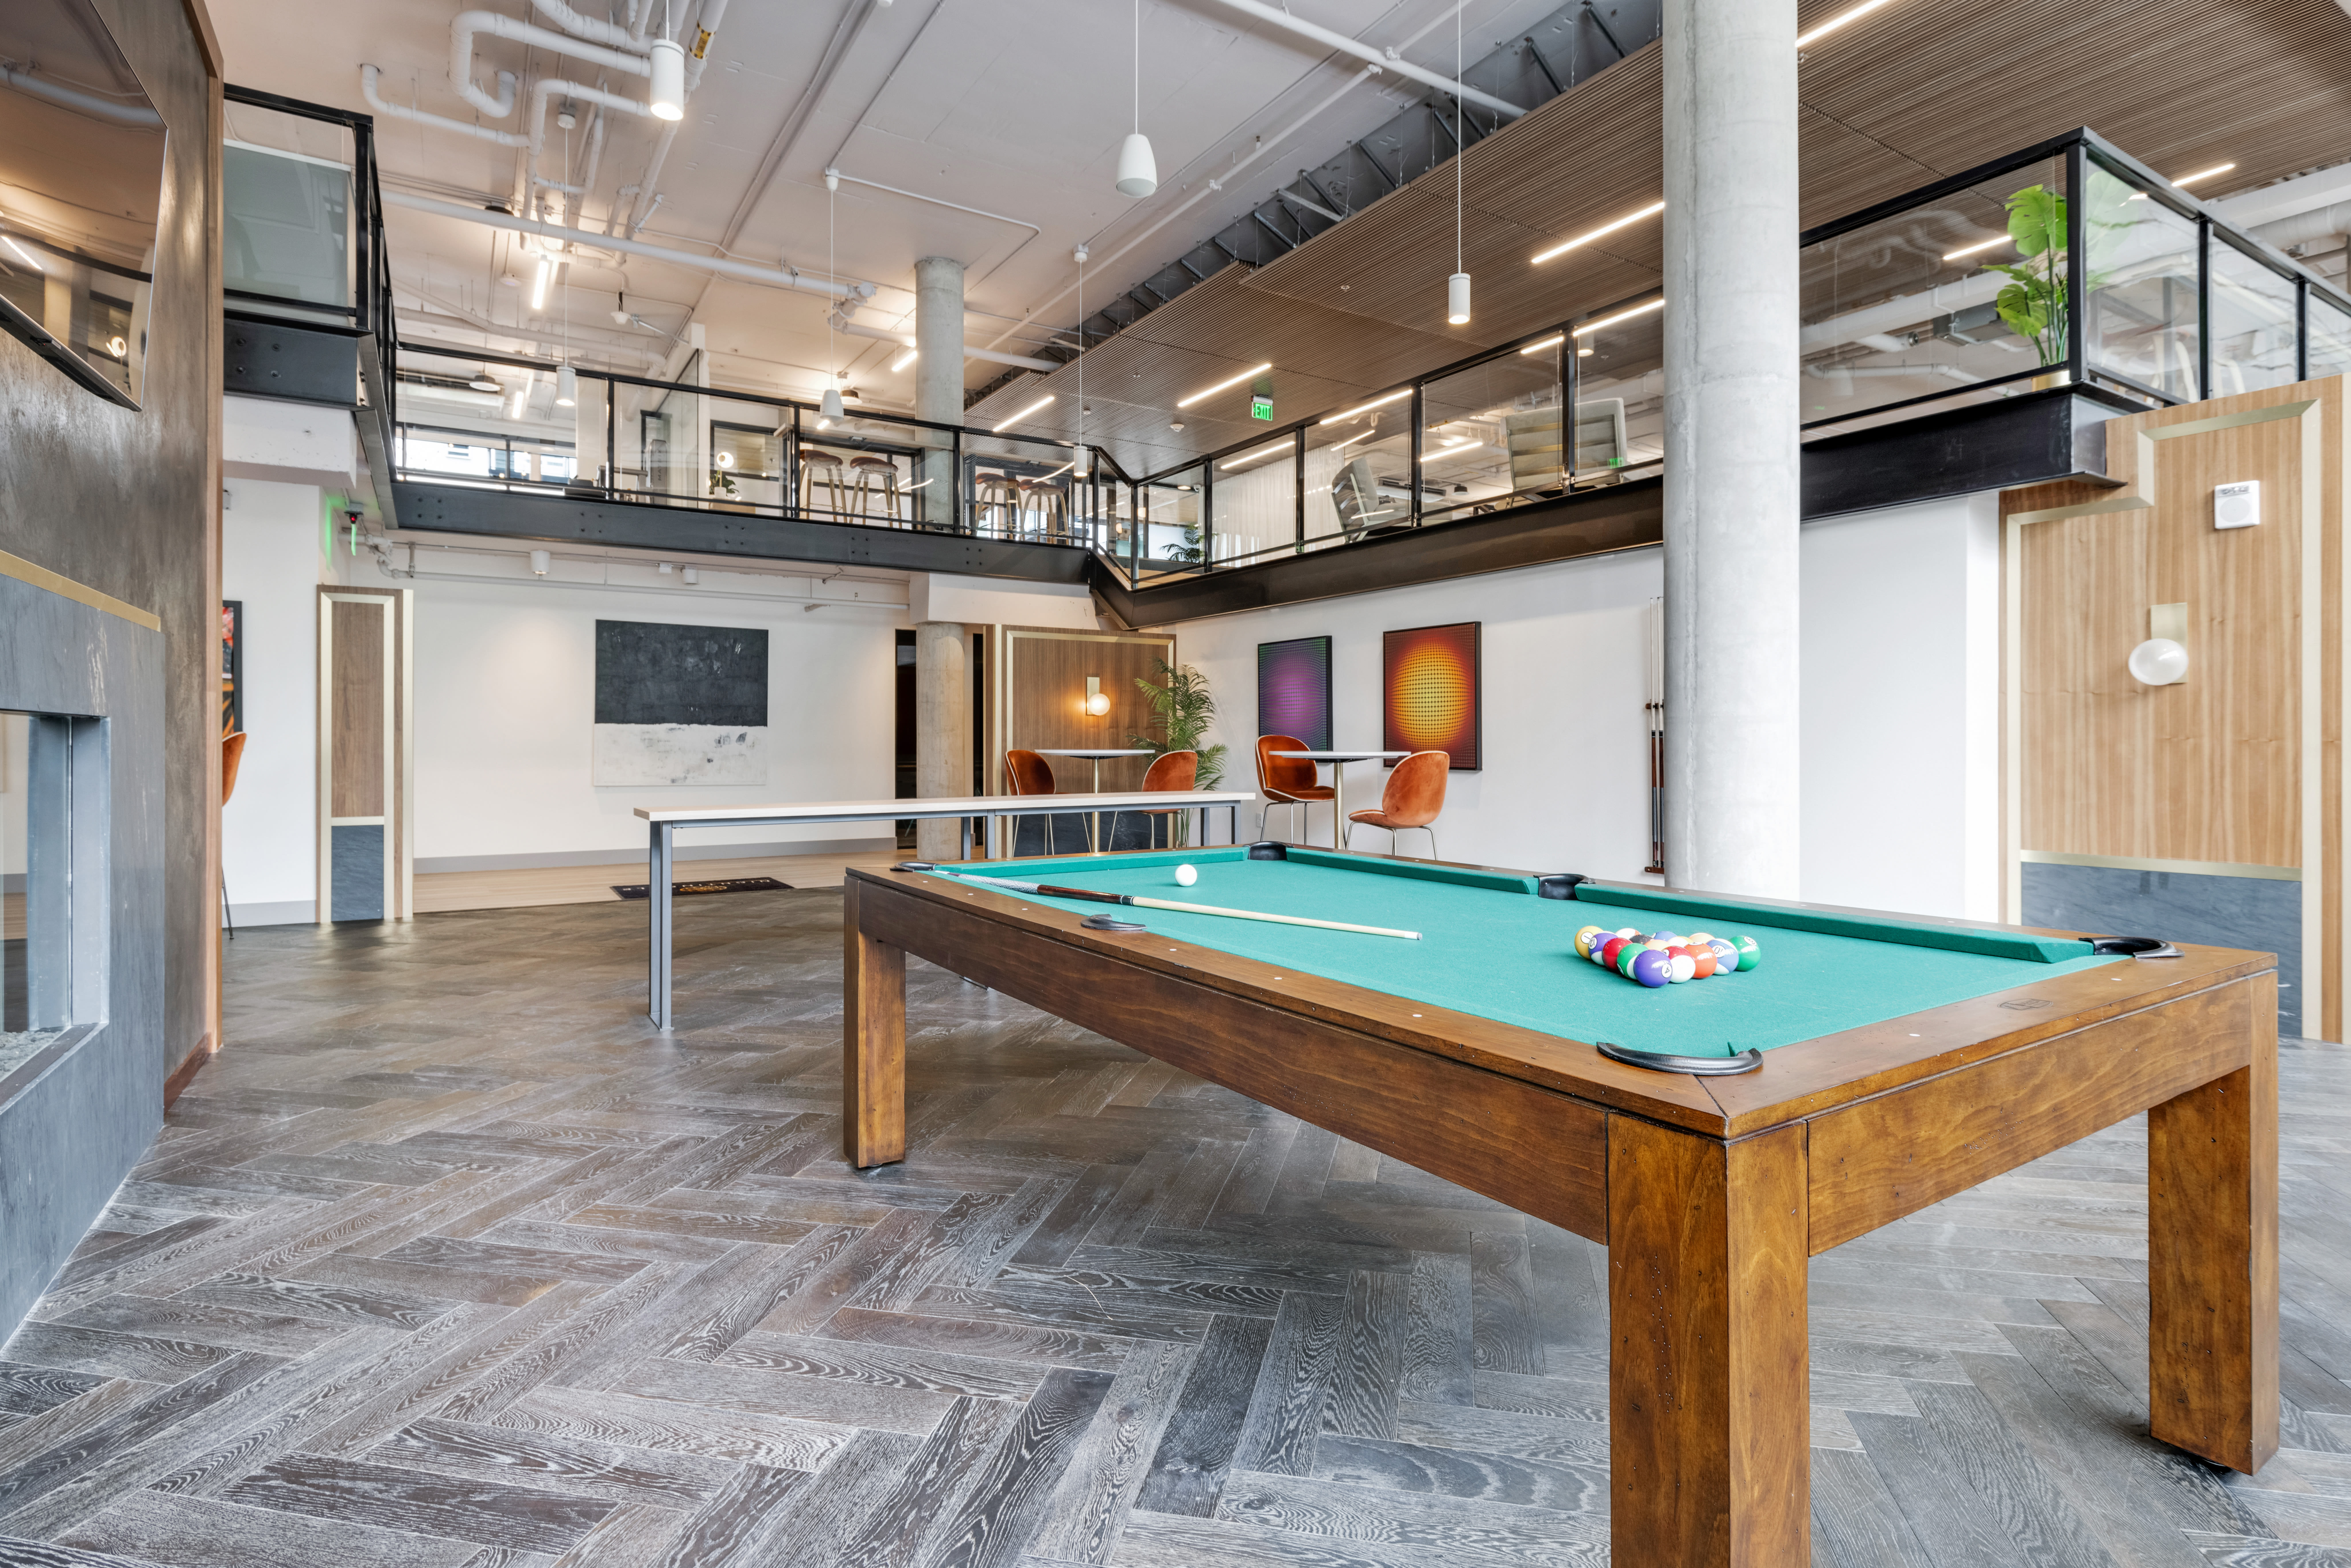 Game room with billiards table at Nightingale in Redmond, Washington